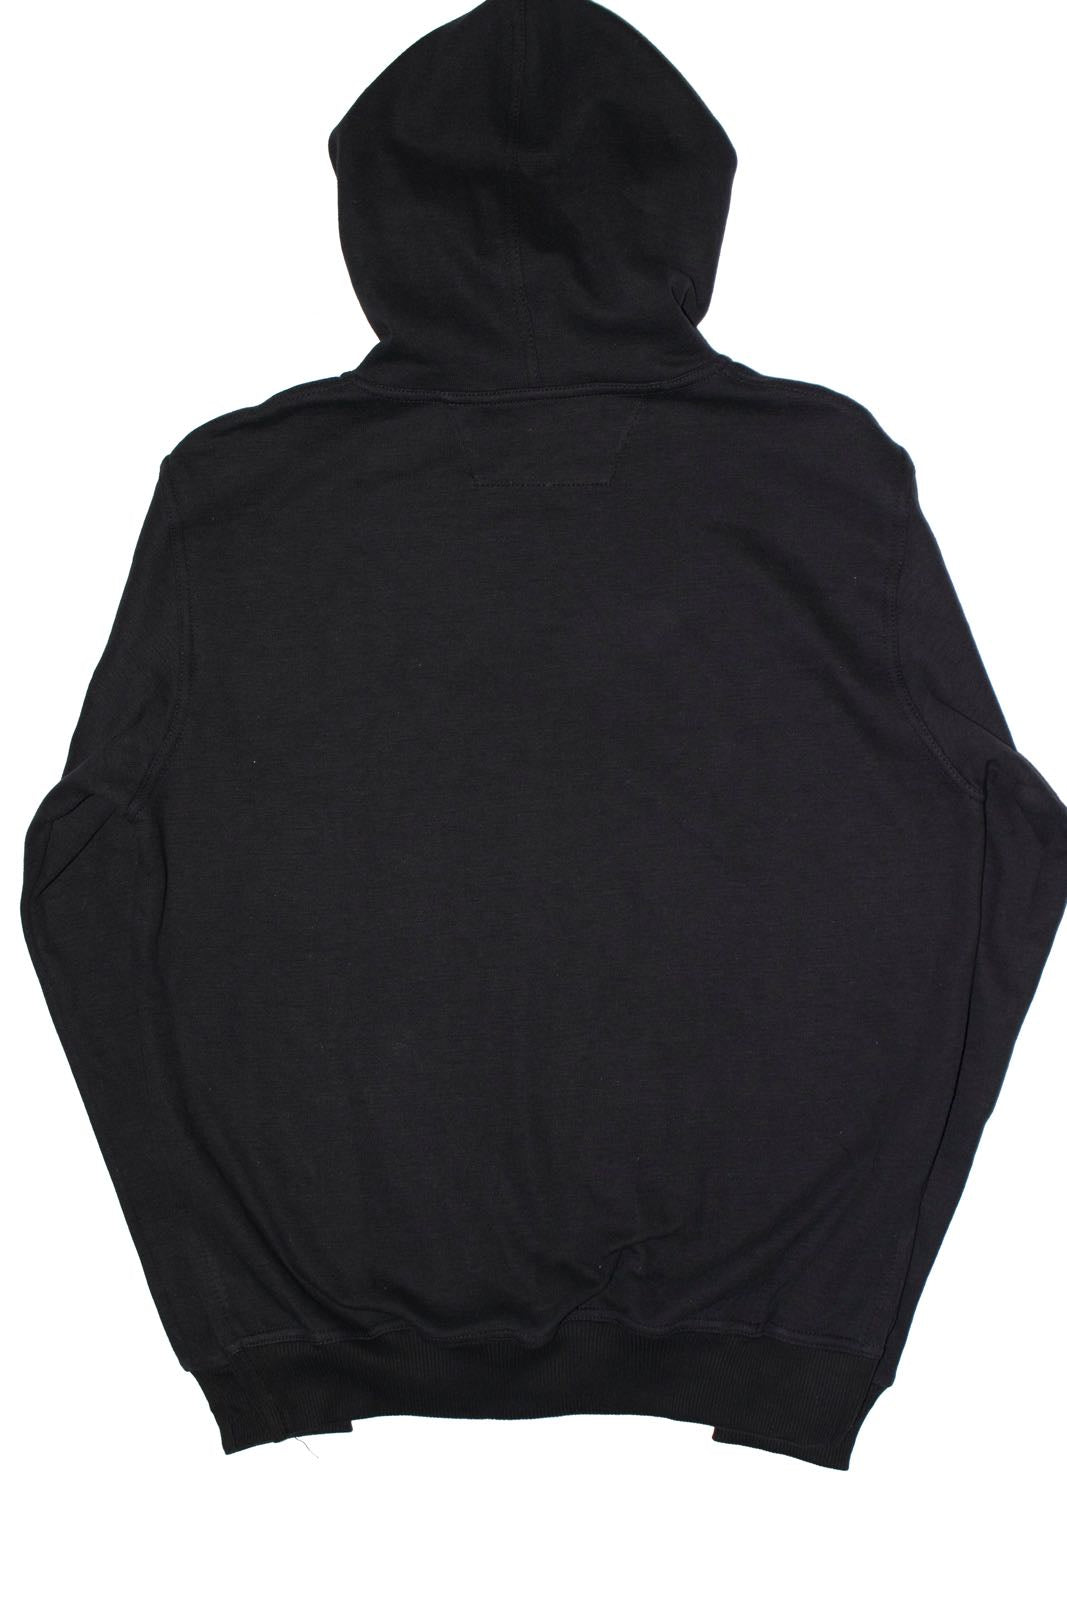 12 STEPS HOODIE BLACK - KONTROLLED SUBSTANCE